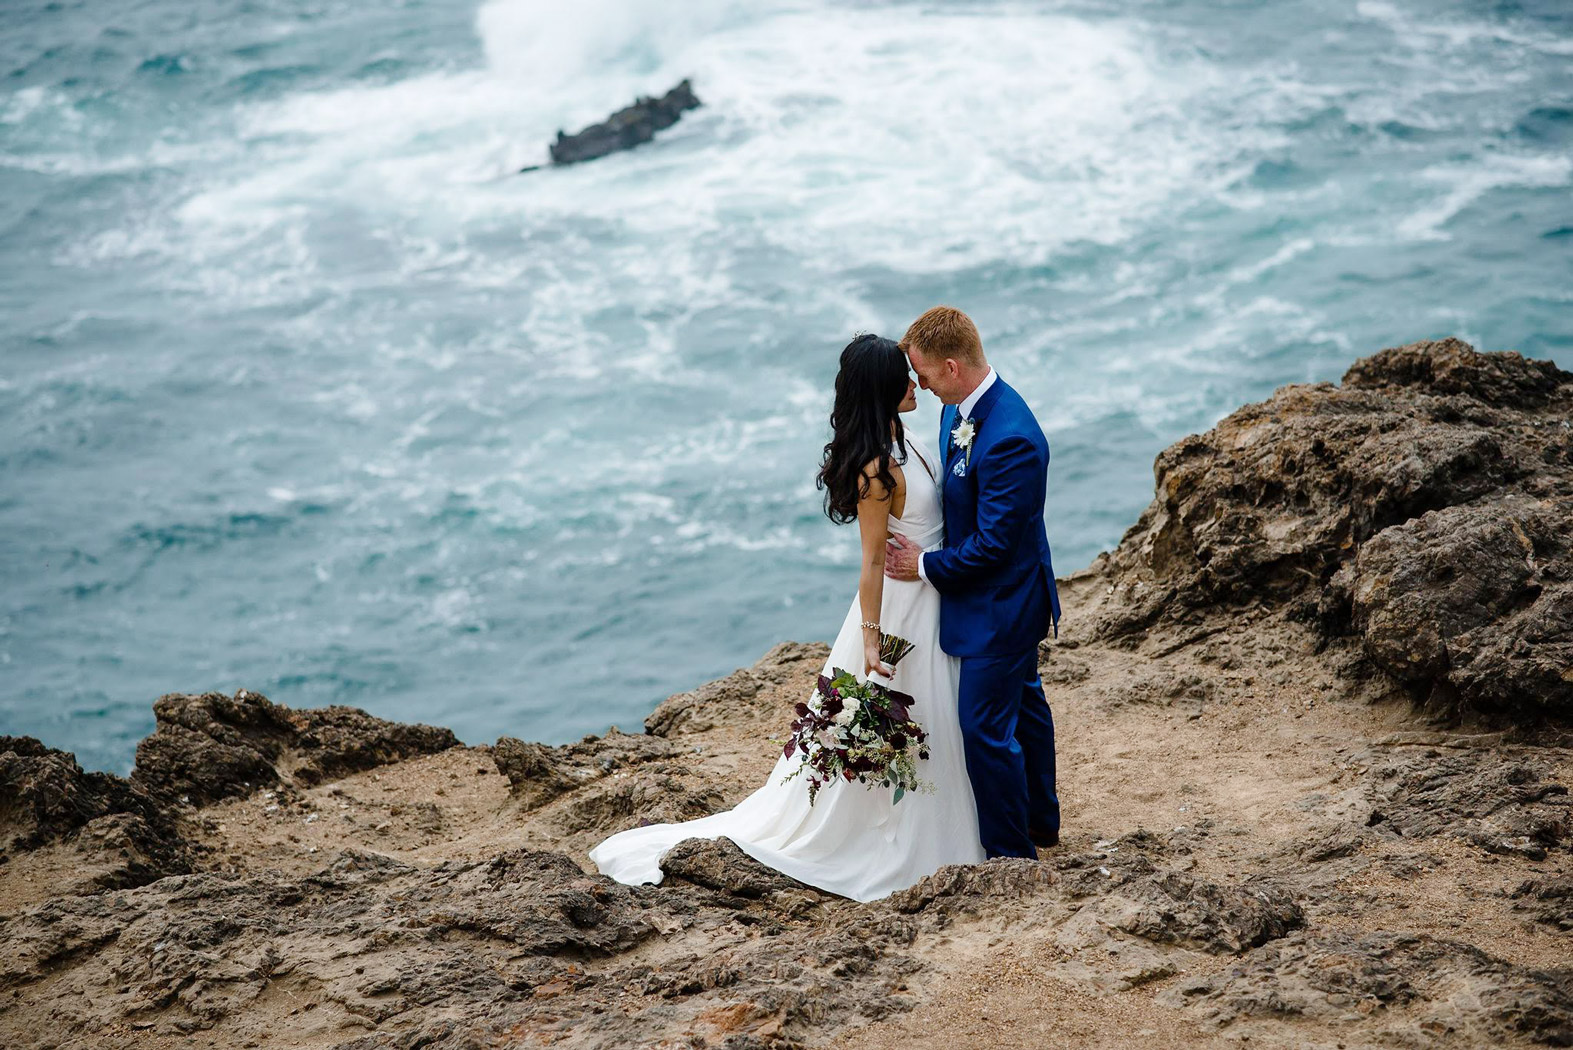 bride andgroom standing on the edge of a cliff overlooking the ocean water